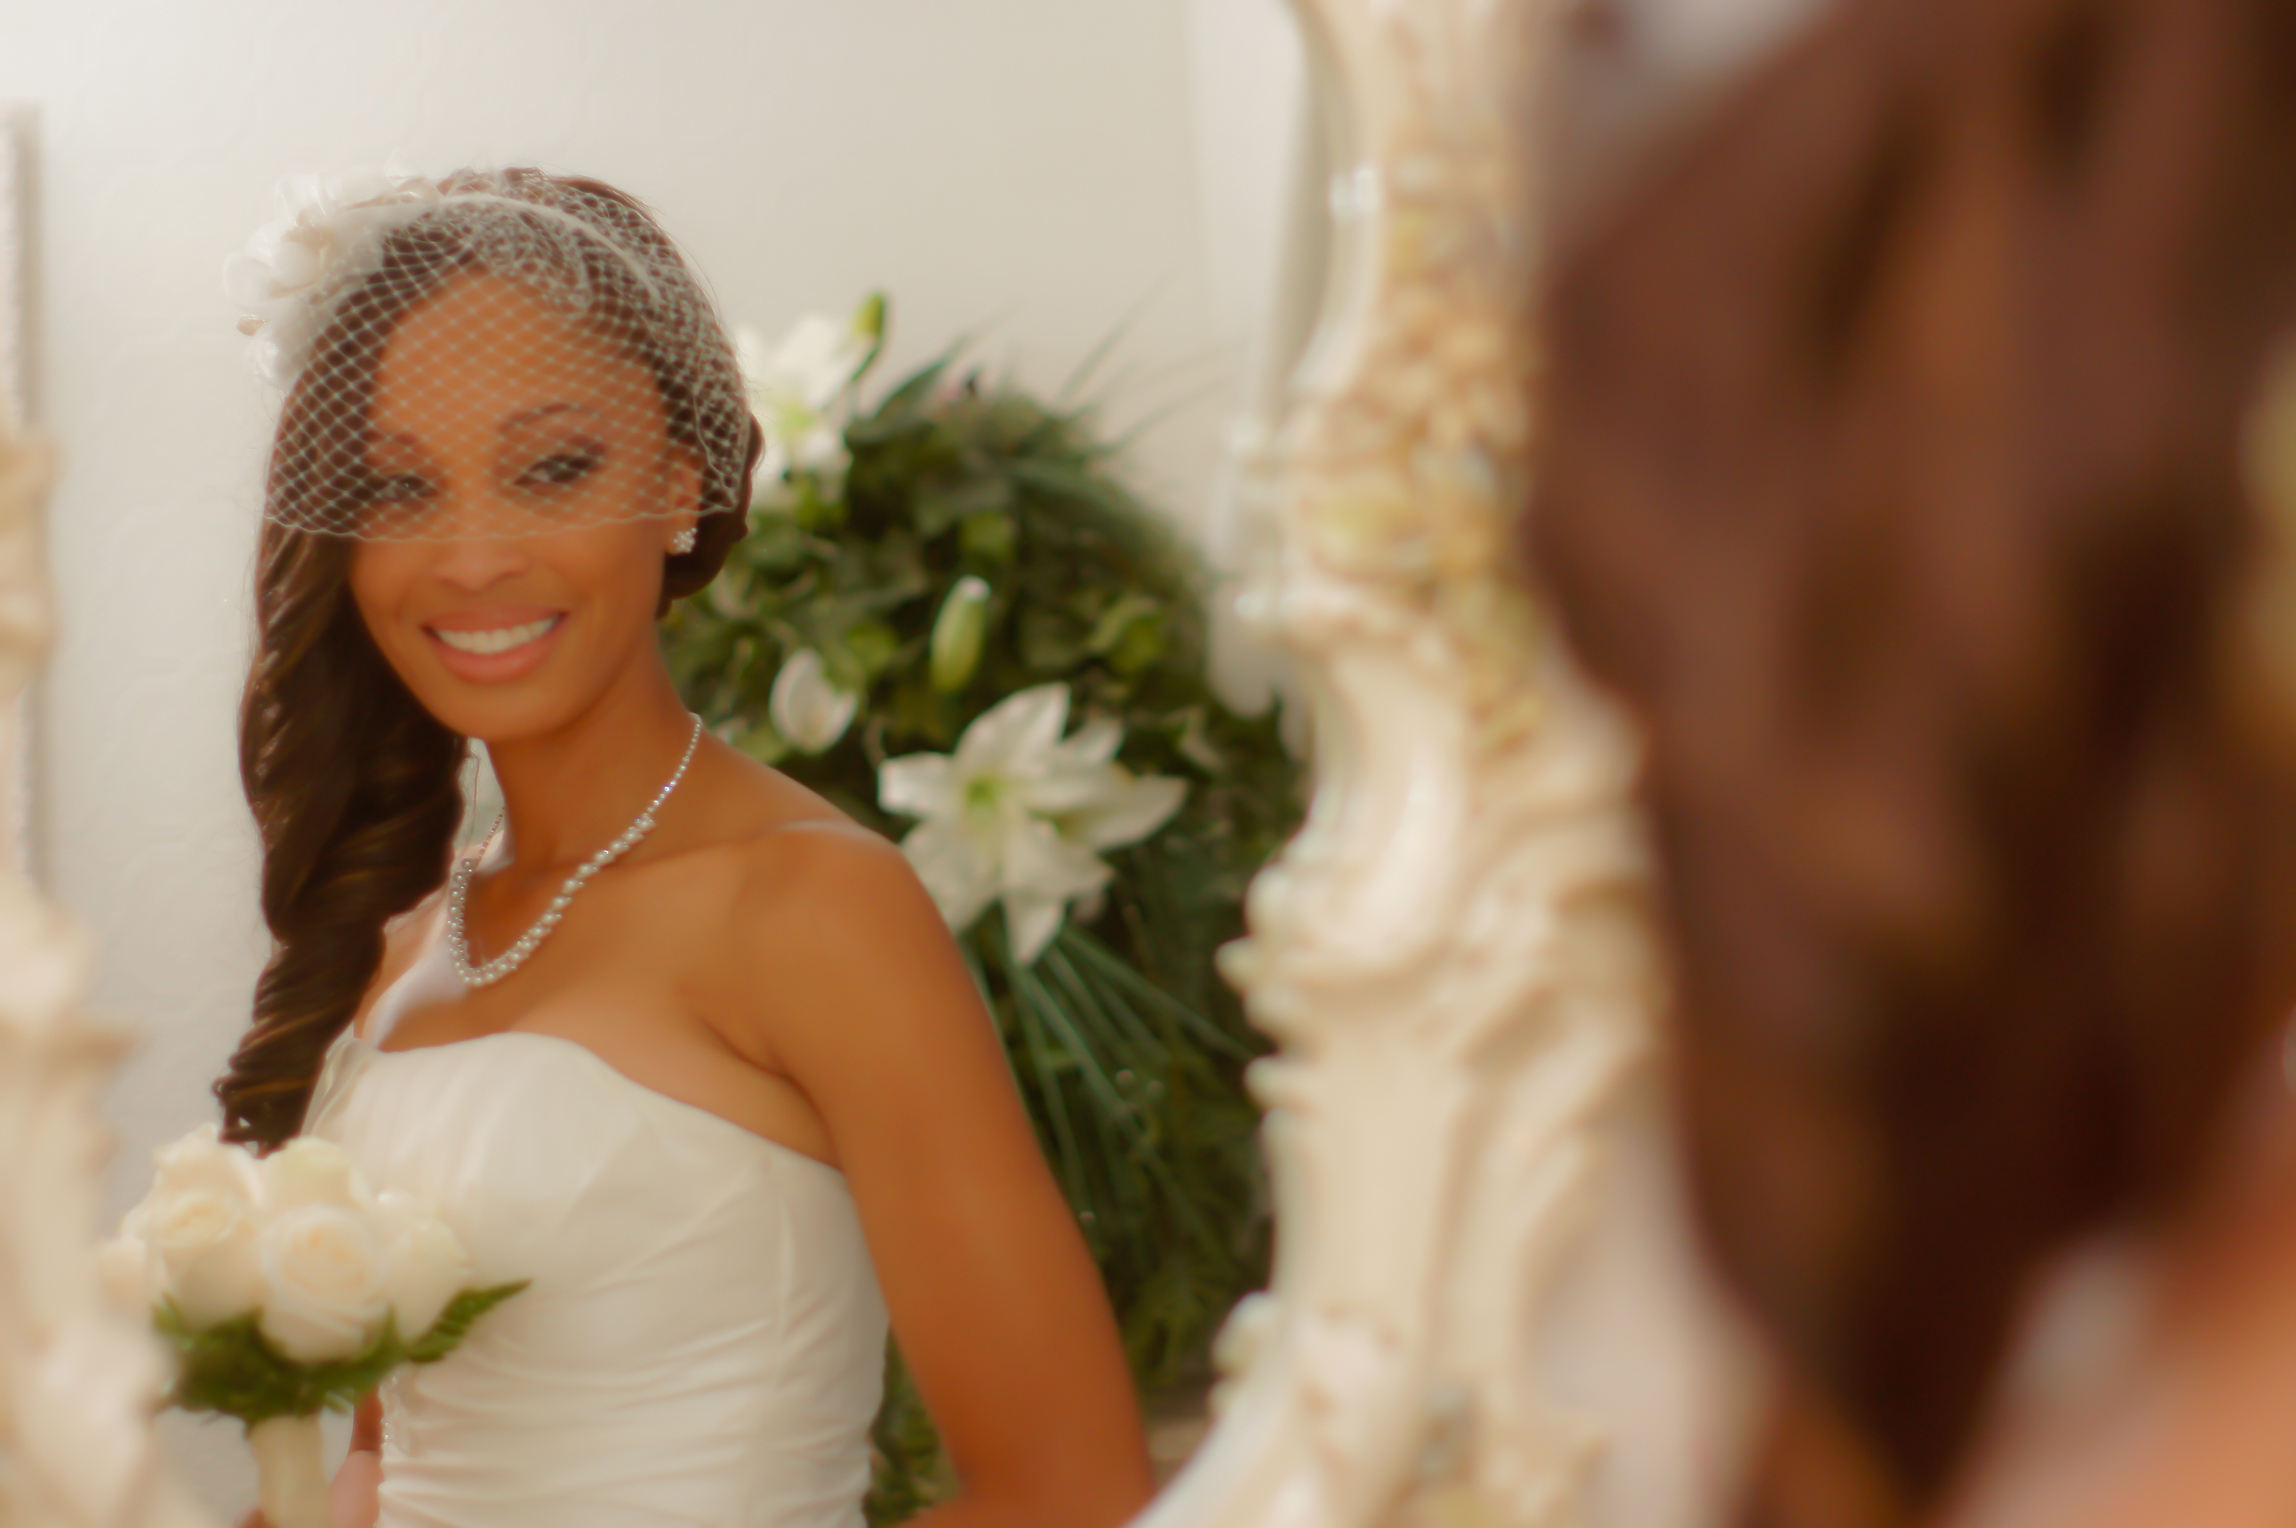 Beautiful bride in wedding dress smiles at her stunning image in the mirror.